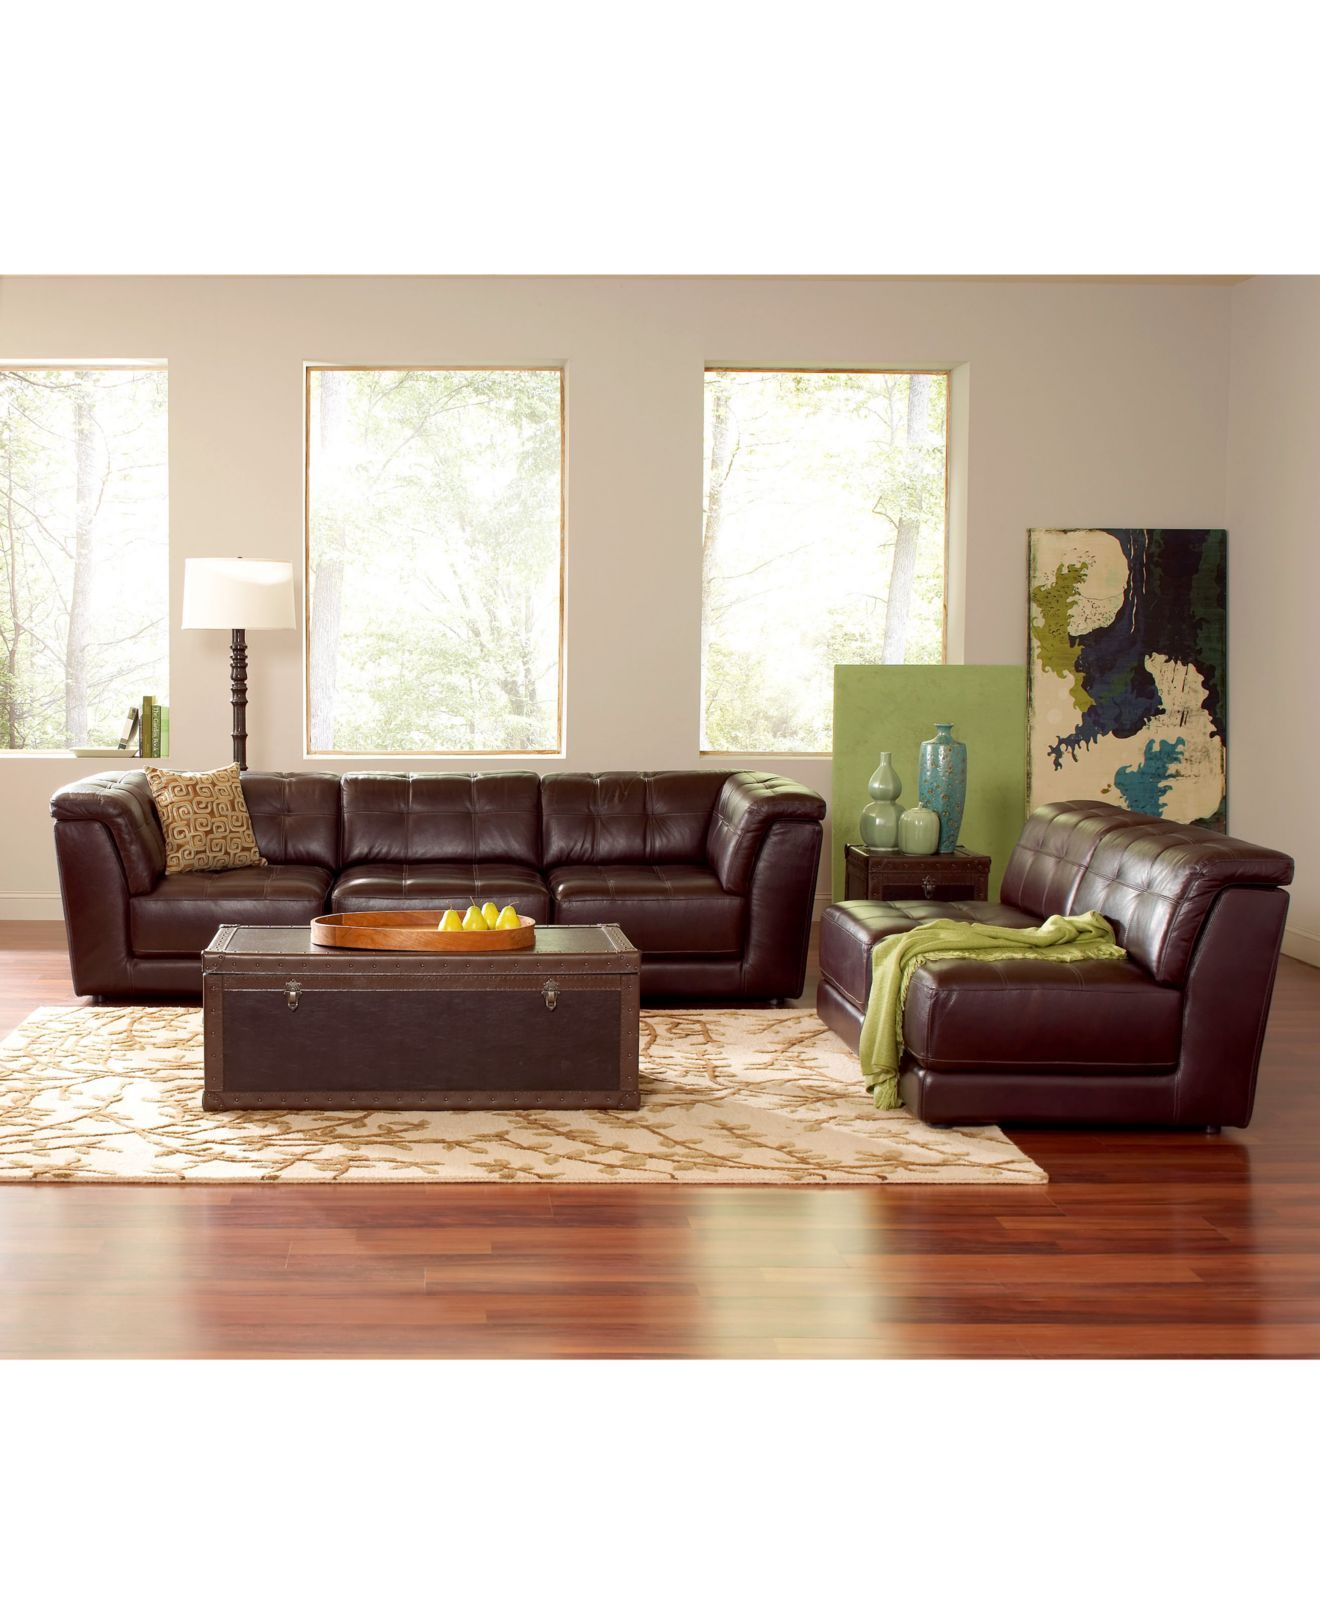 Best Stacey Leather Living Room Furniture Sets Pieces Modu… With Images Modular Living Room 400 x 300